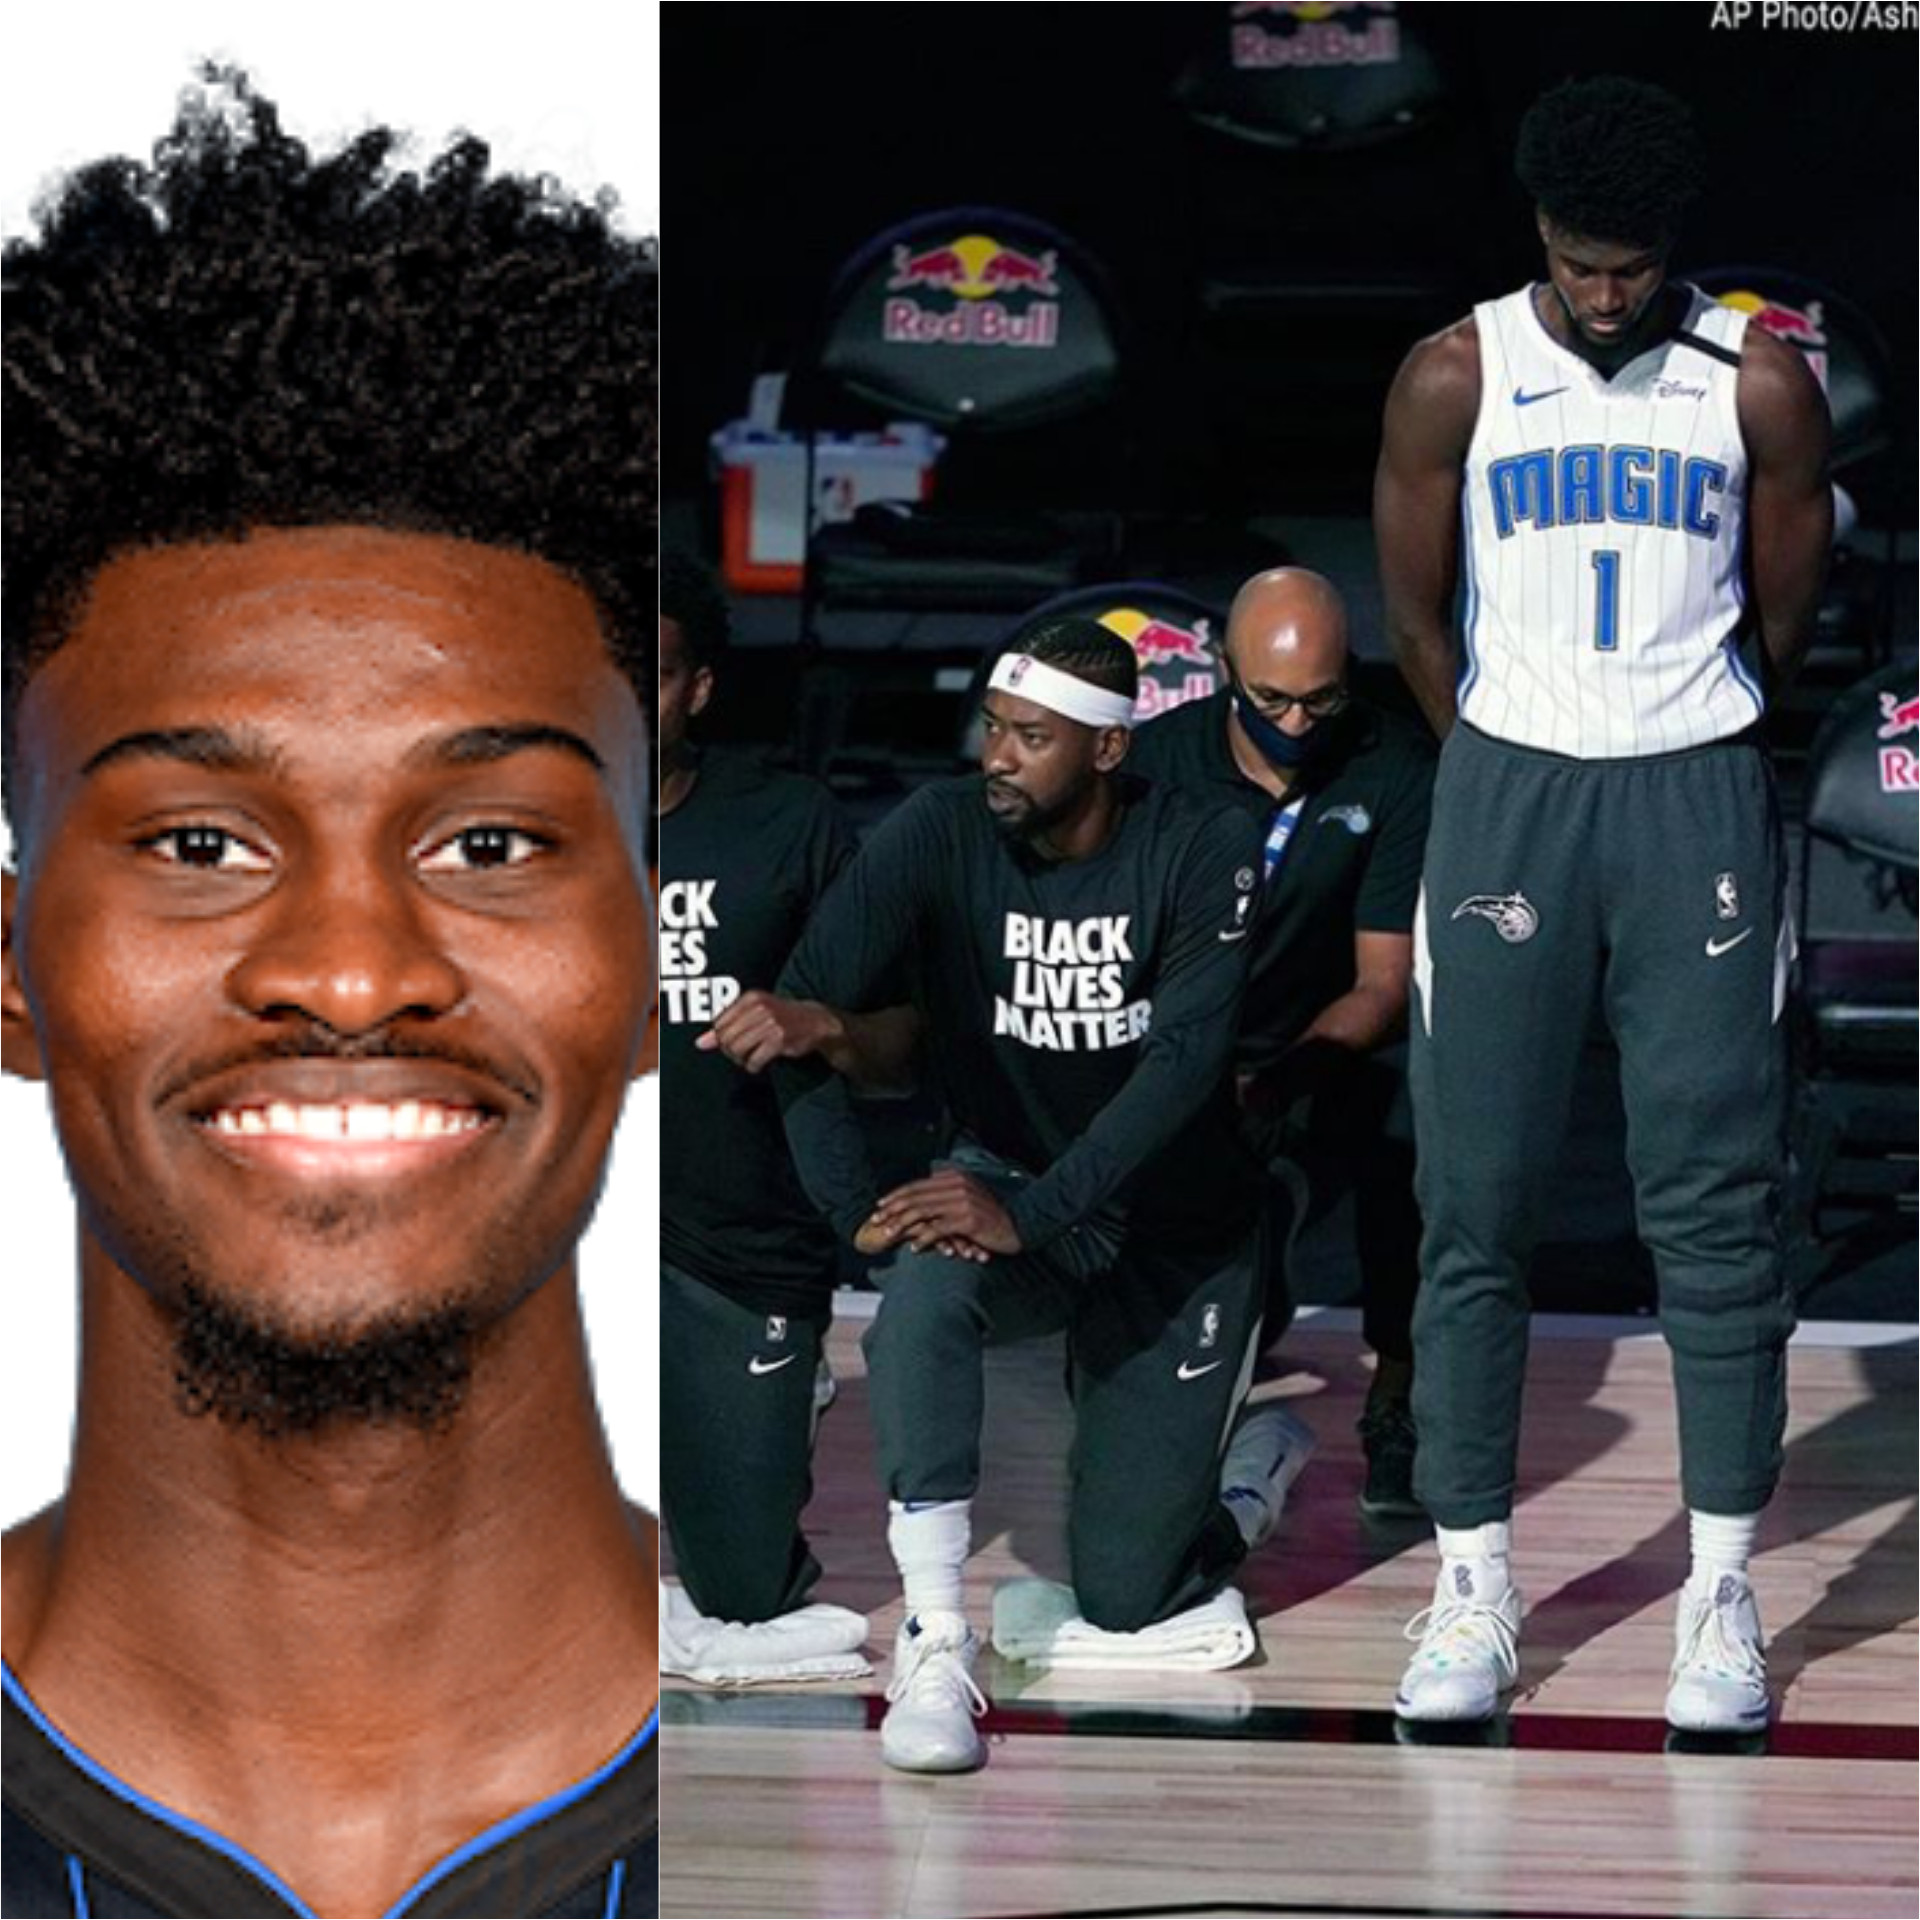 Basketballer Jonathan Isaac Becomes First NBA Player To Refuse Kneeling Down And Wearing 'Black Lives Matter' Shirt During National Anthem (Photos/Video)